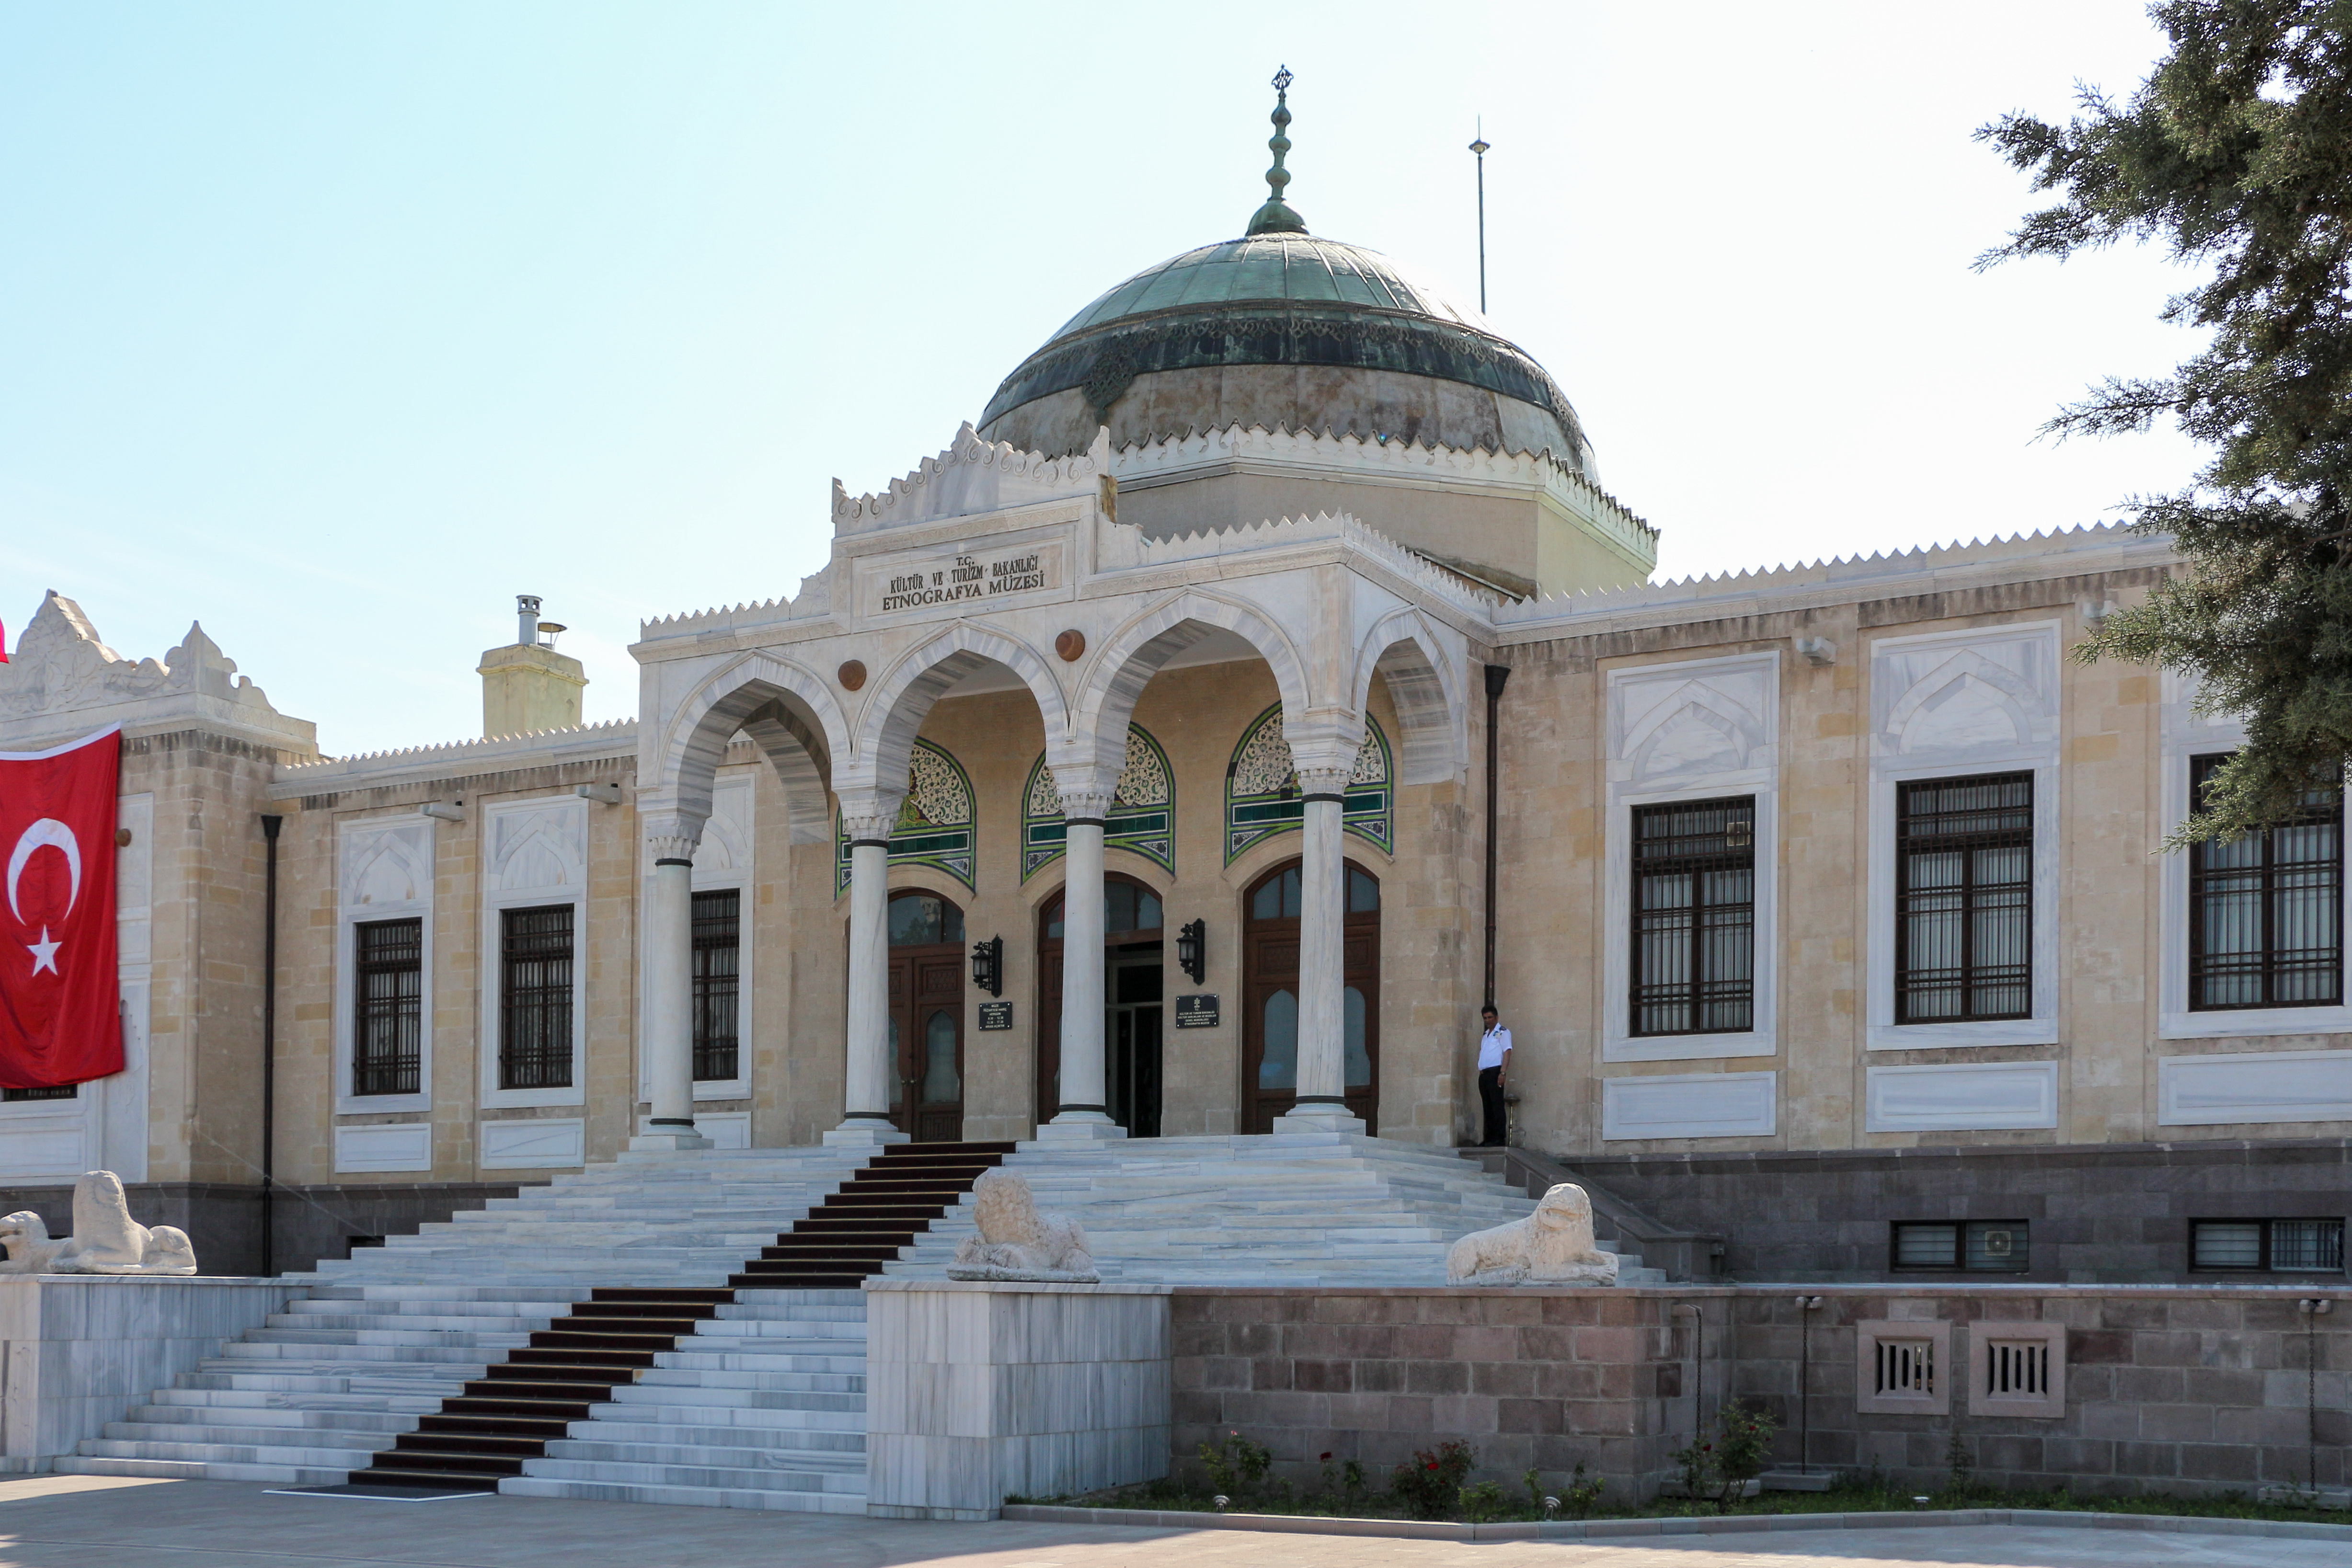 Ethnography Museum of Ankara - Wikiwand